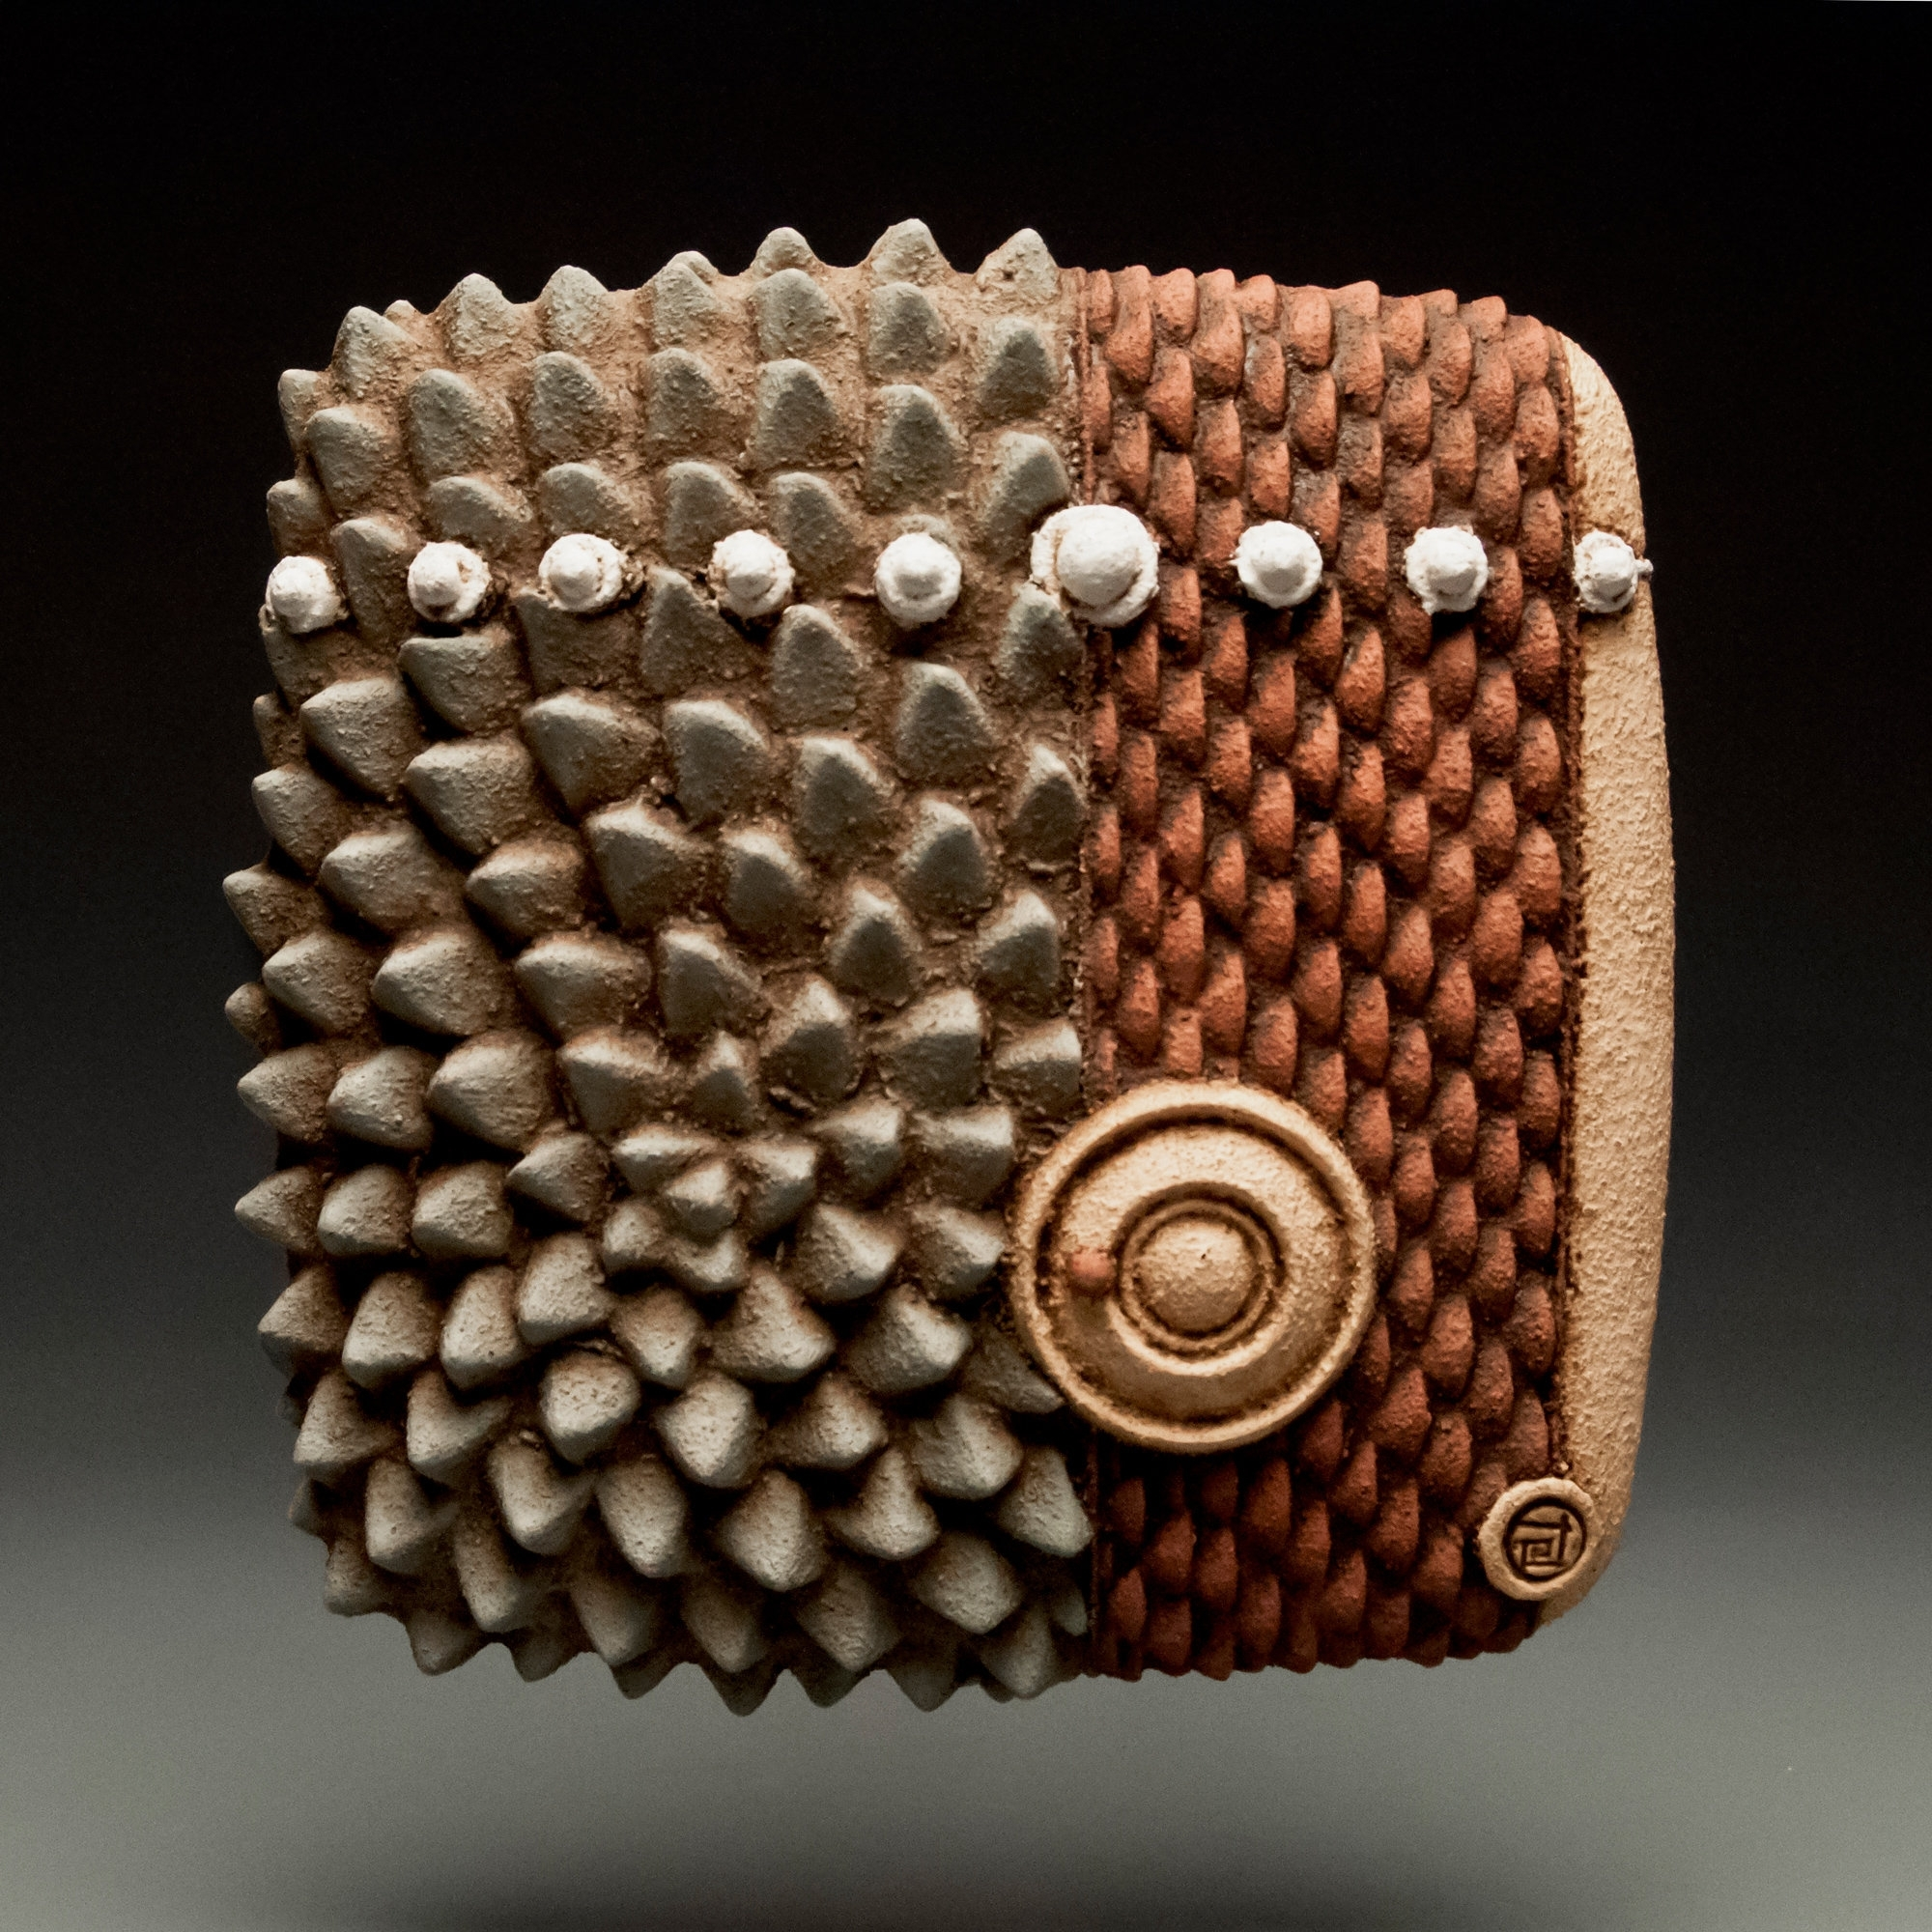 Fashionable Bearing Fieldchristopher Gryder (Ceramic Wall Sculpture Throughout Ceramic Wall Art (View 12 of 20)